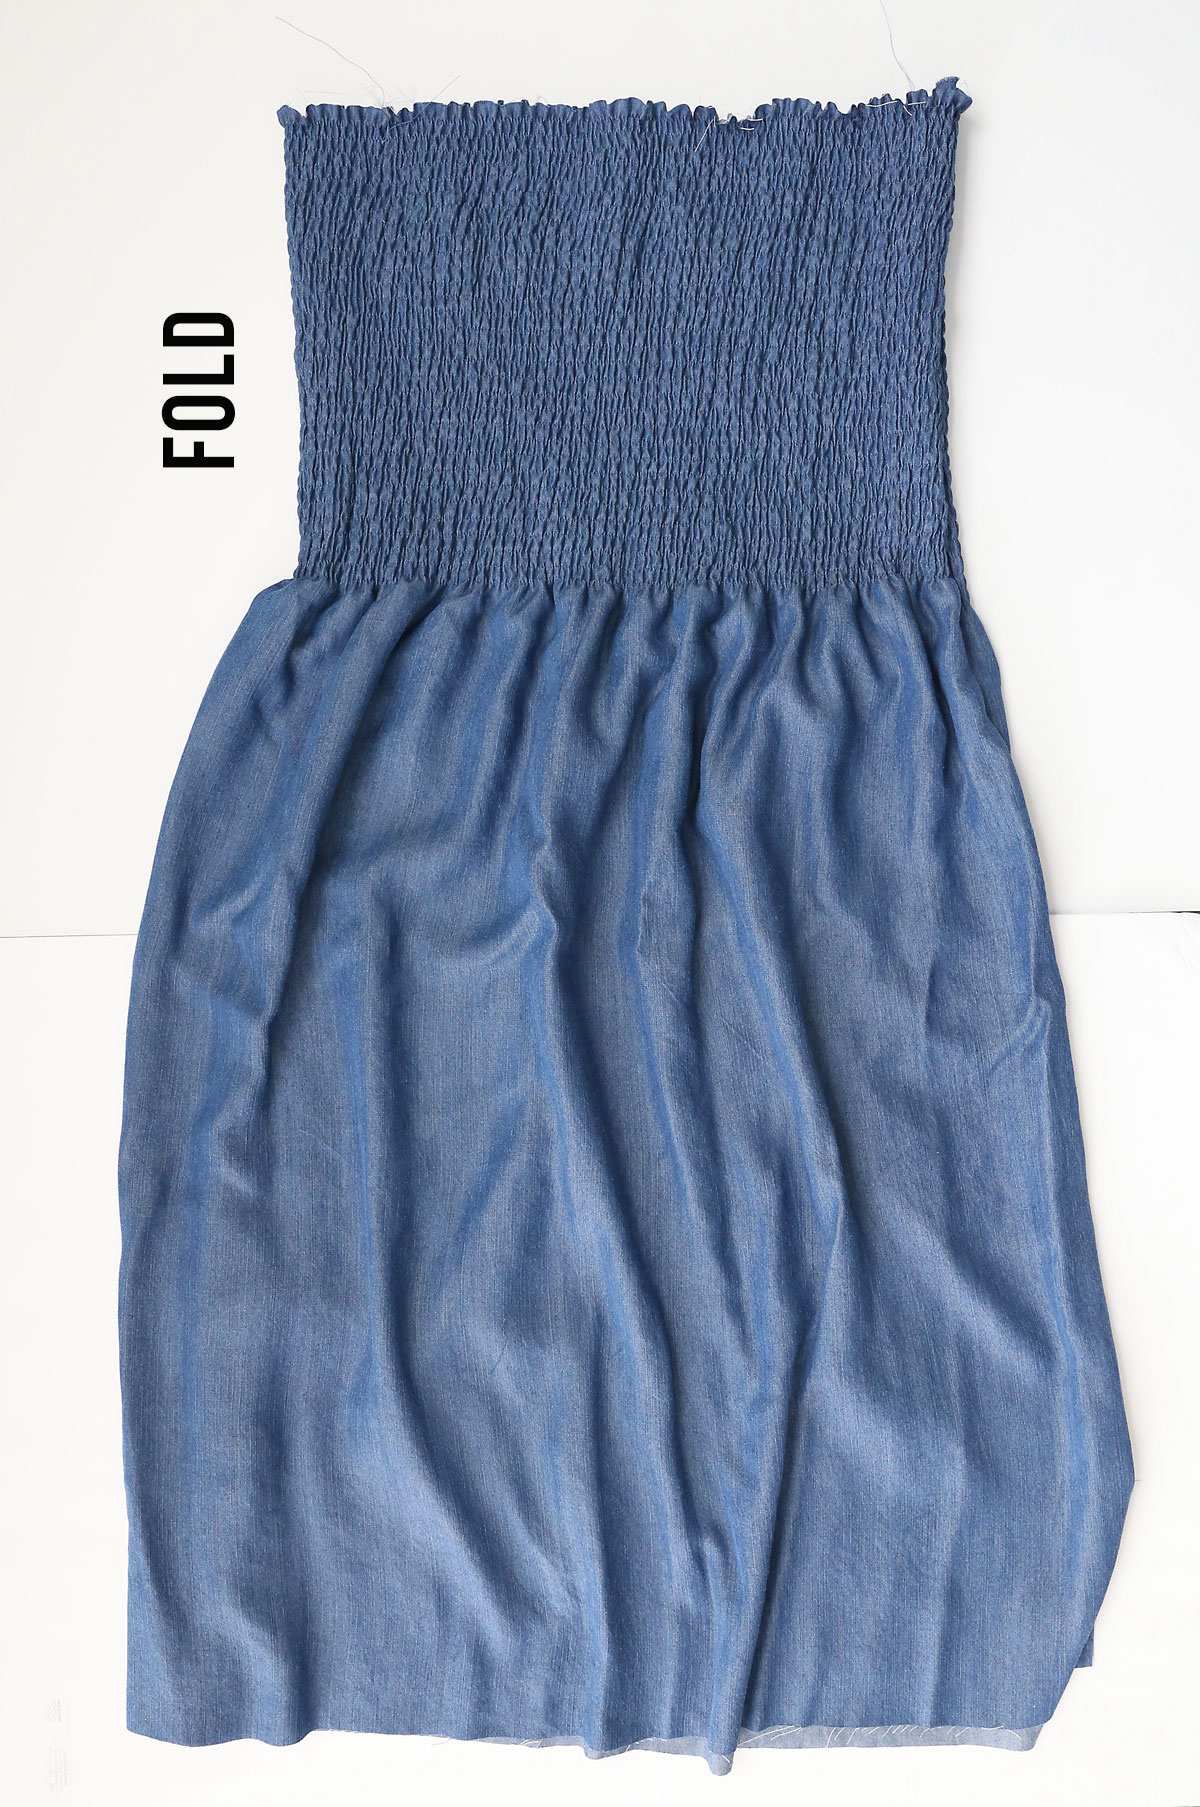 Chambray fabric that has been smocked with elastic thread along the top third, folded in half lengthwise